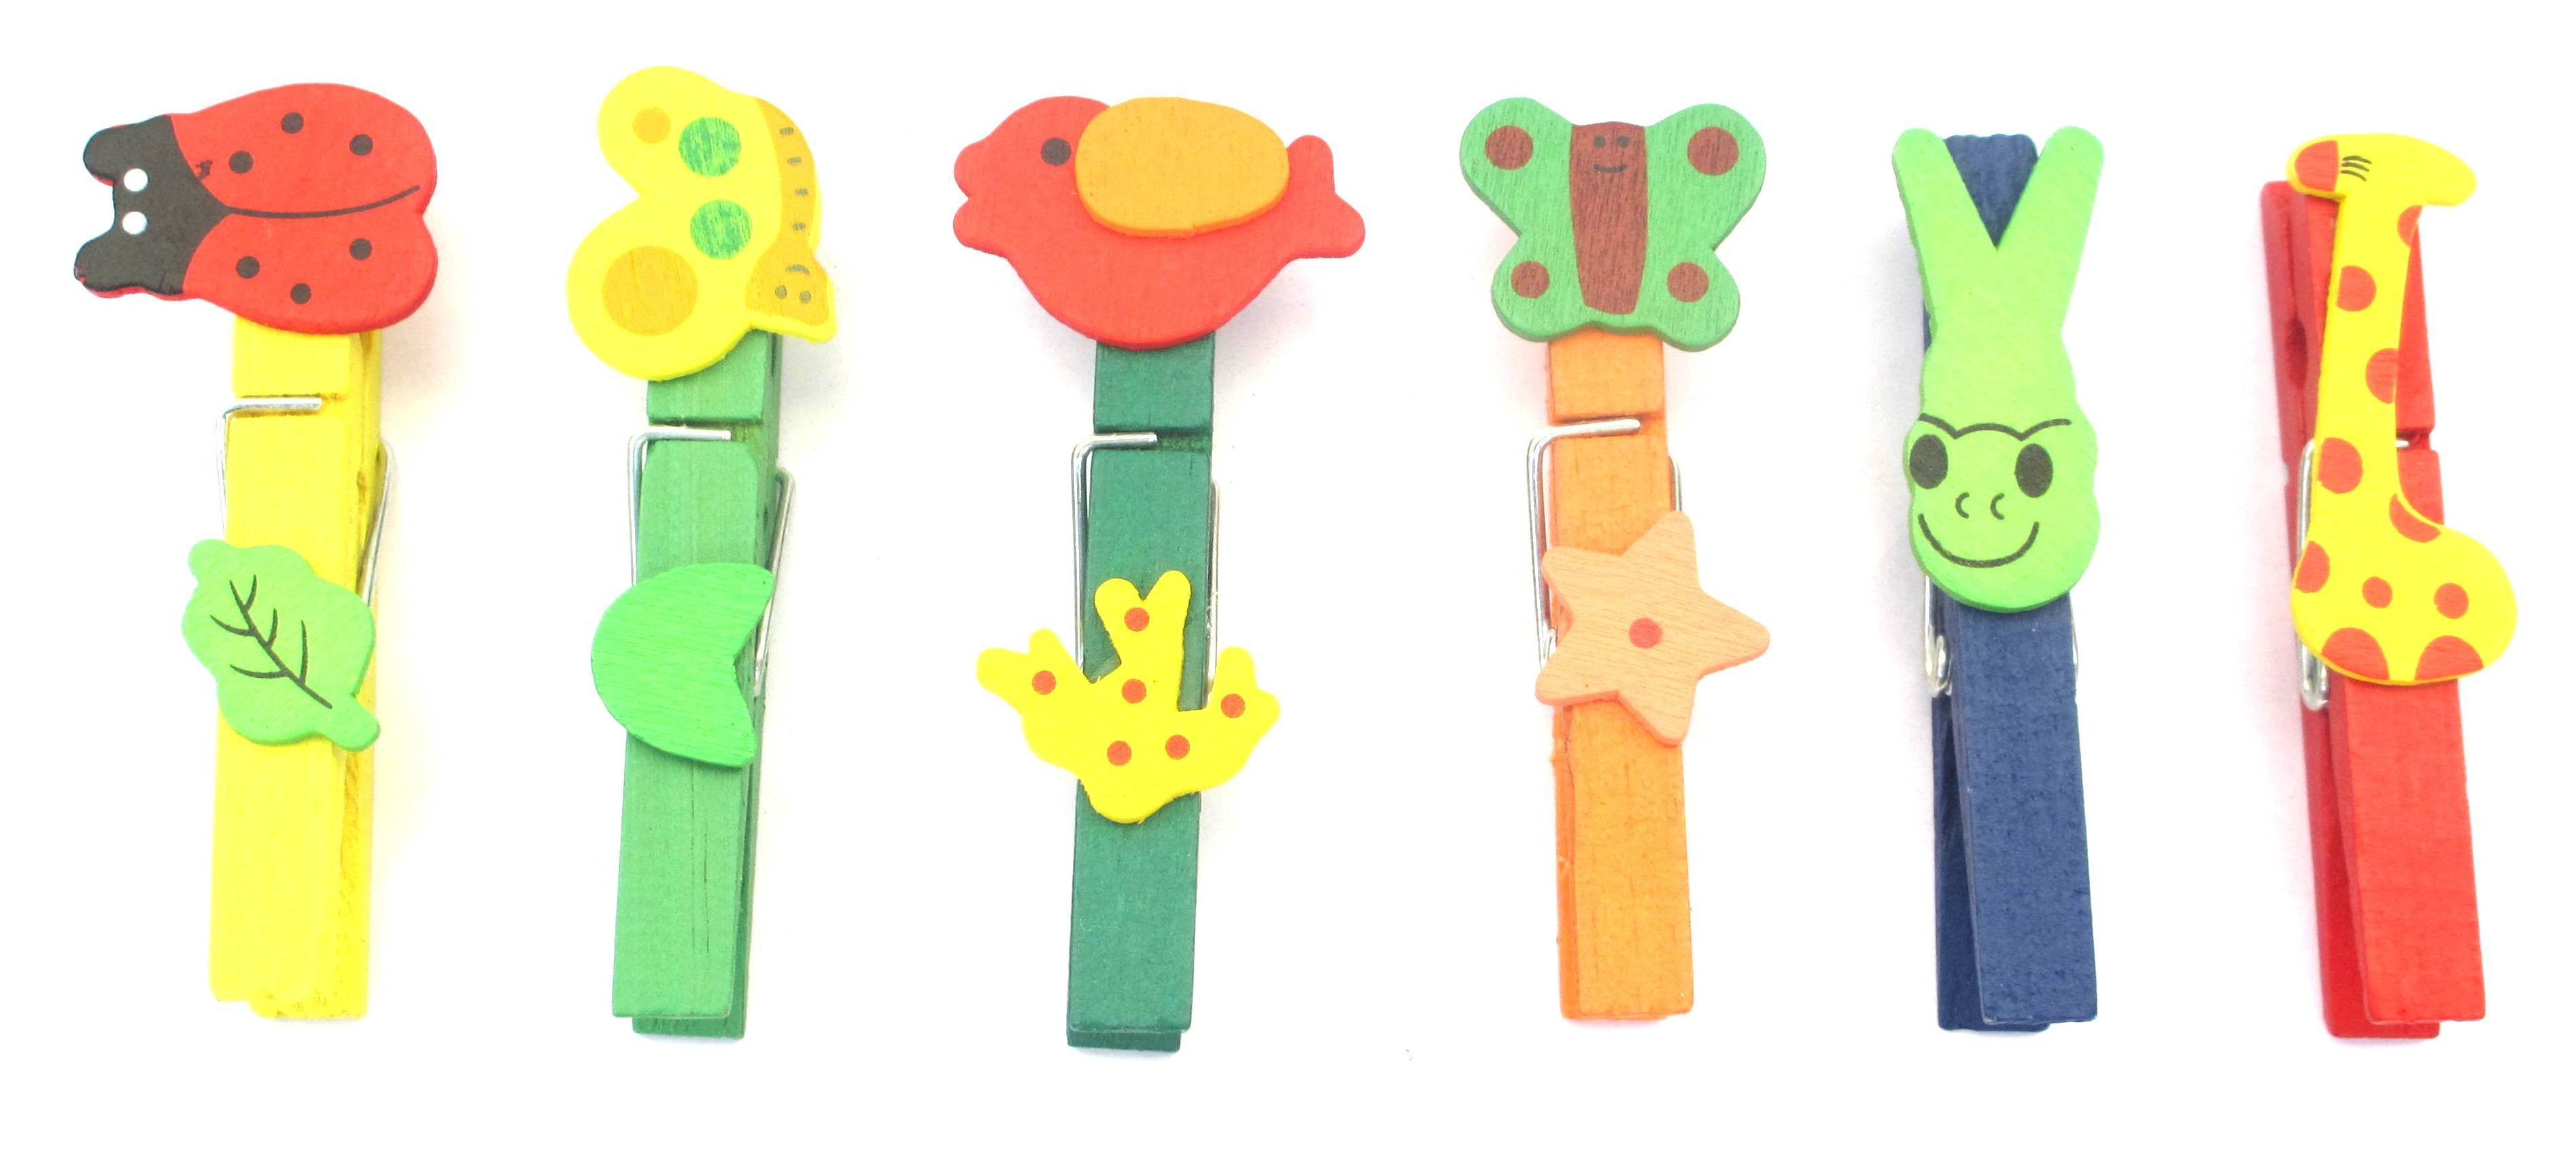 Cute Animal Designs Clips (Pack Of 6)